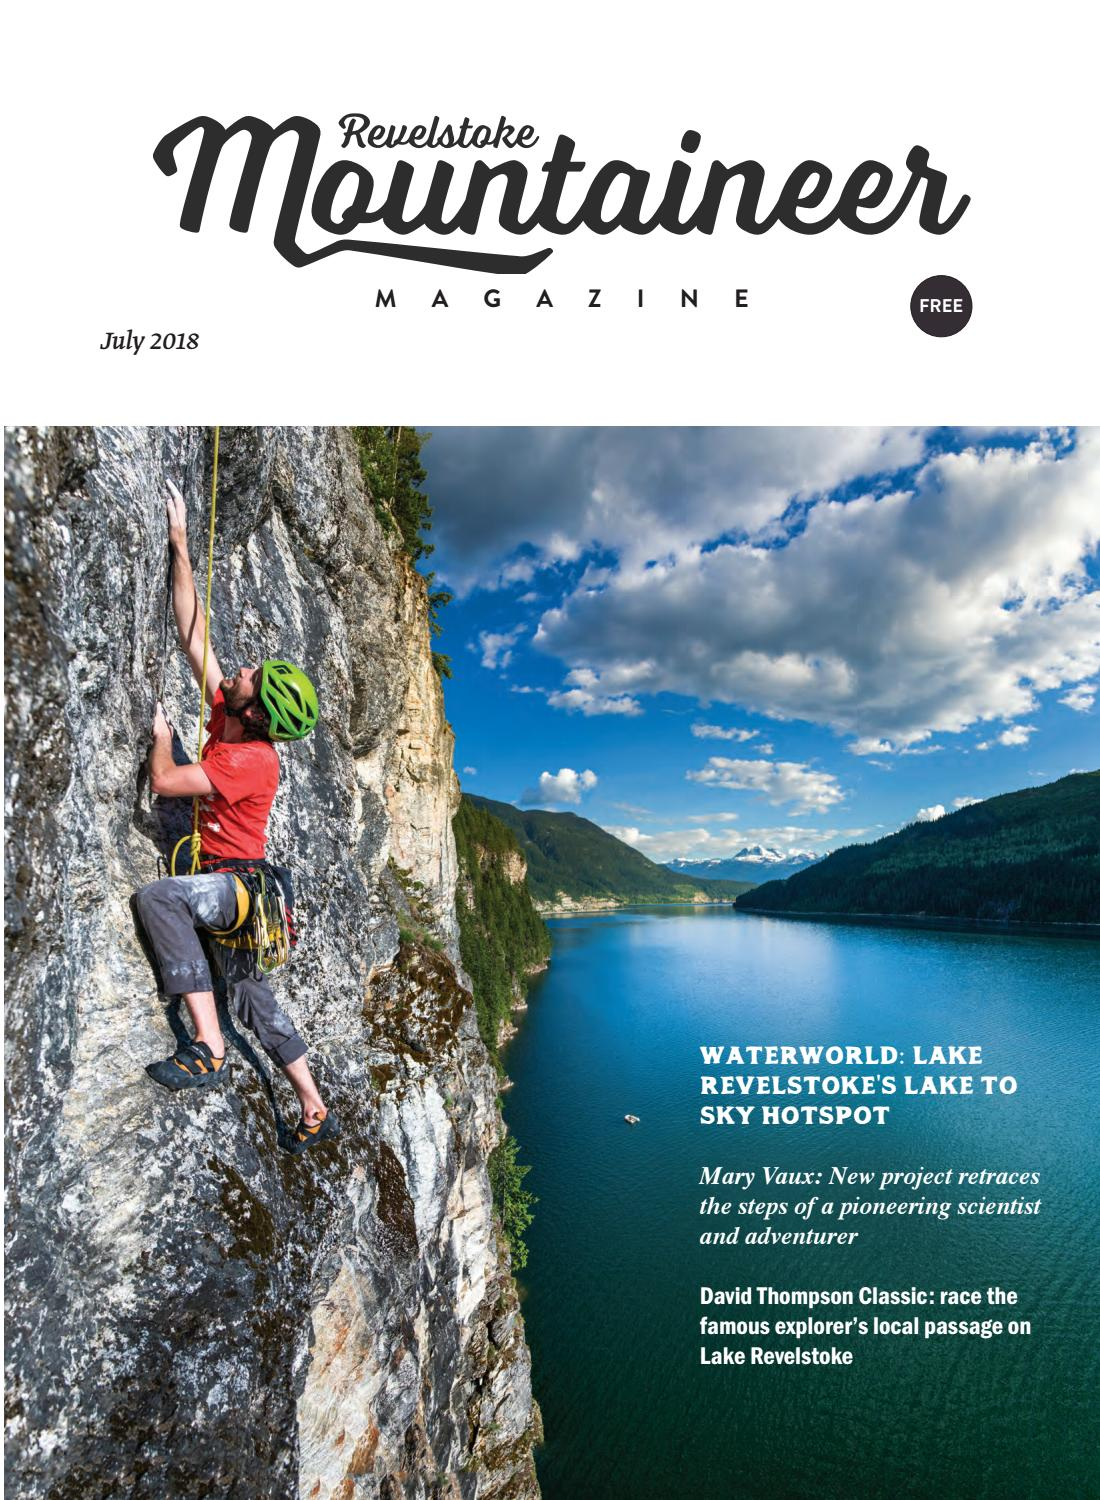 Revelstoke Mountaineer Magazine July 2018 issue by Revelstoke Mountaineer -  issuu